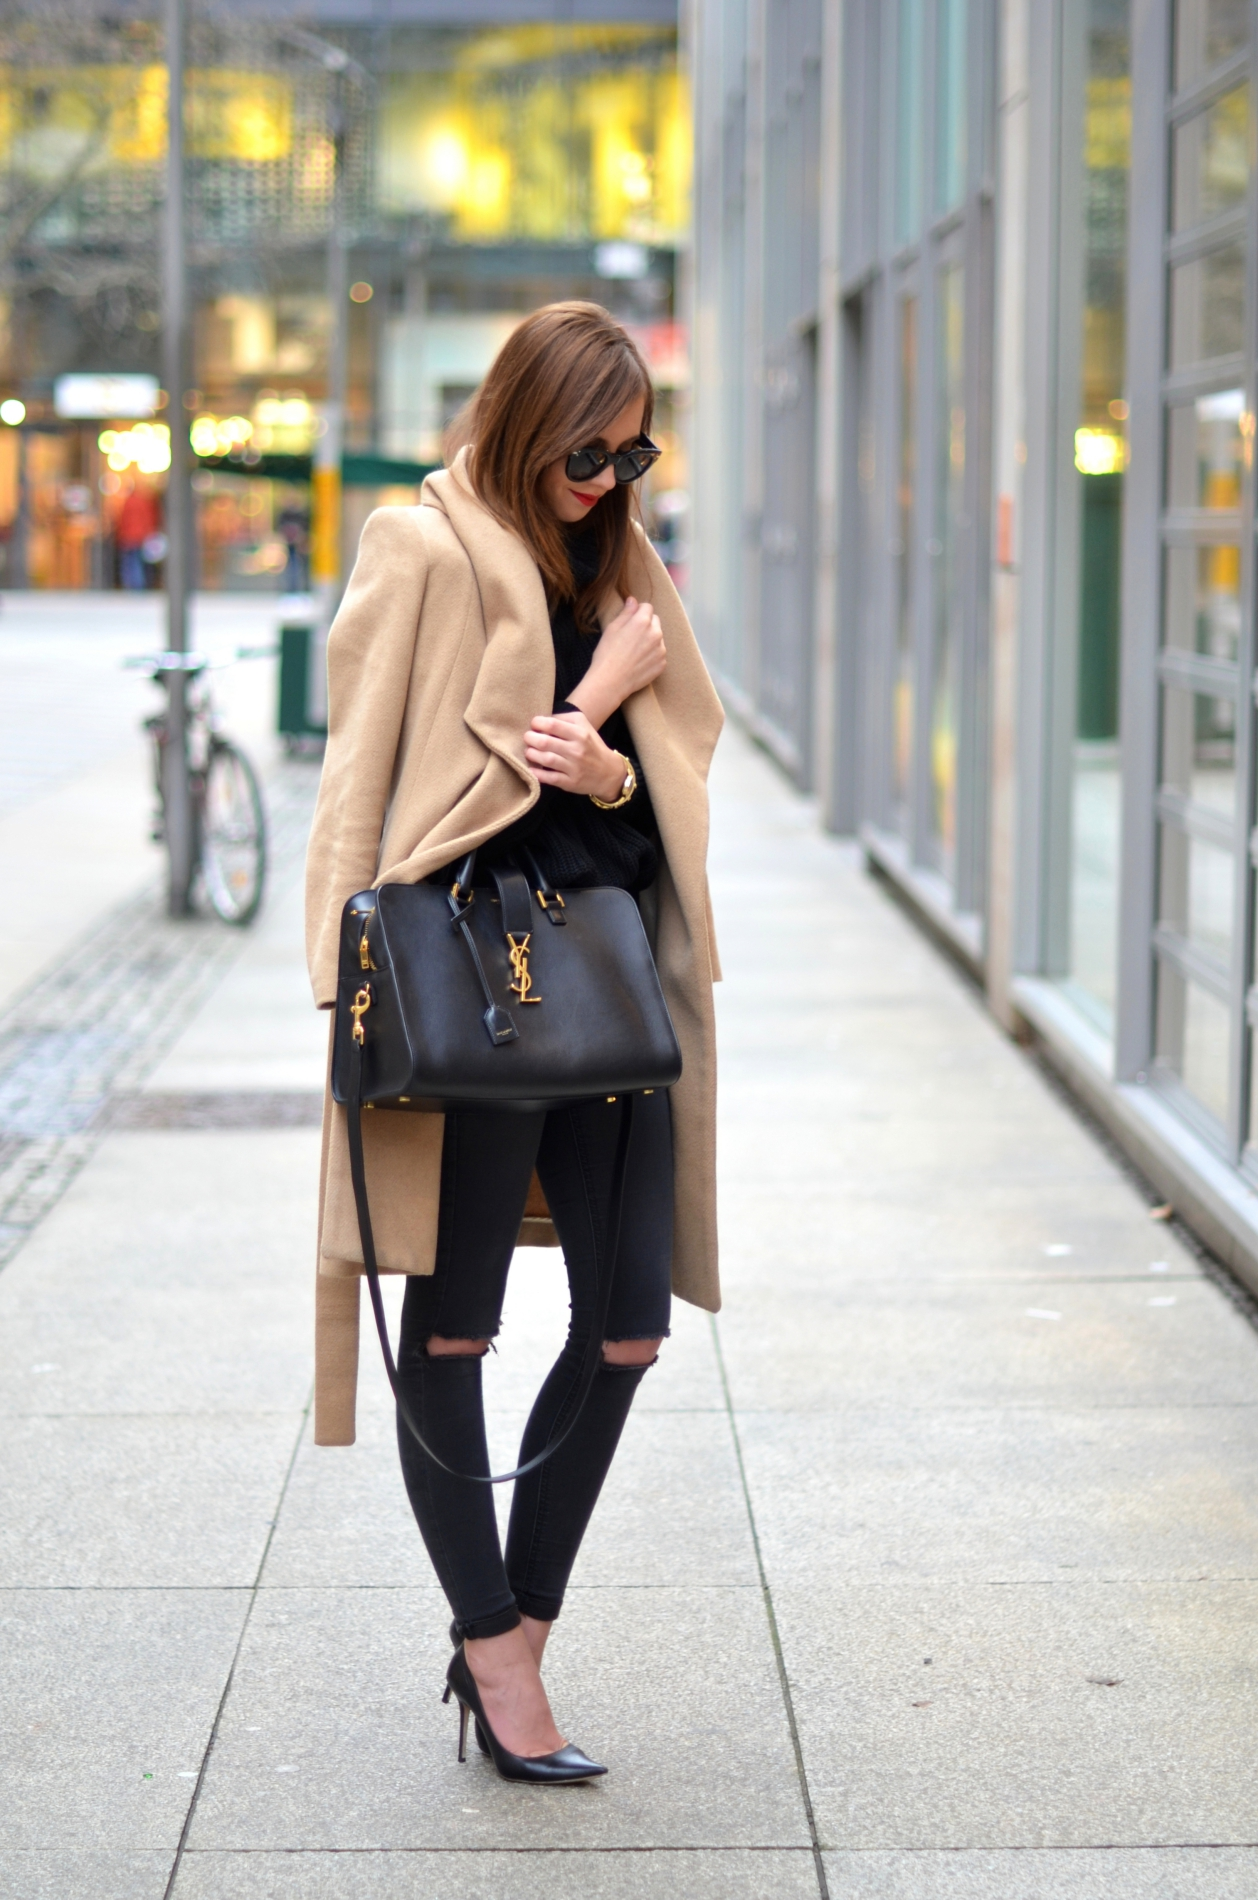 Grabbing Cute Fall Outfits for Women